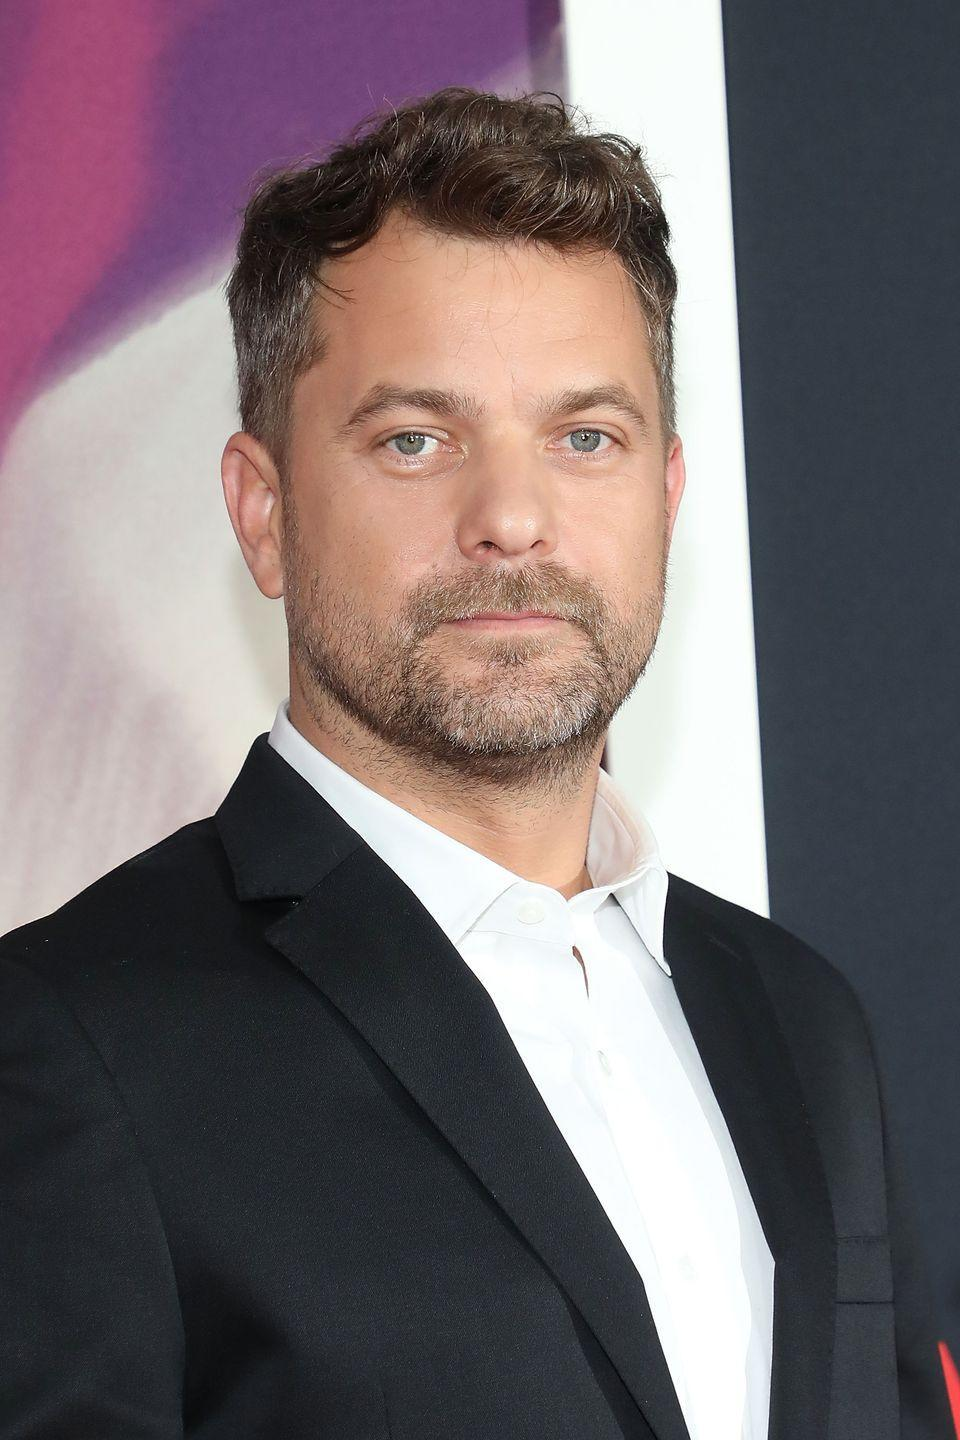 <p>Mr. Jackson starred in Showtime's <em>The Affair </em>for four seasons and also played the hot dad in Hulu's adaption of <em>Little Fires Everywhere</em>. I'll also give you an update on his romantic life, 'cause I know you're curious: He dated Diane Kruger for 10 years before they split up in 2016. </p>